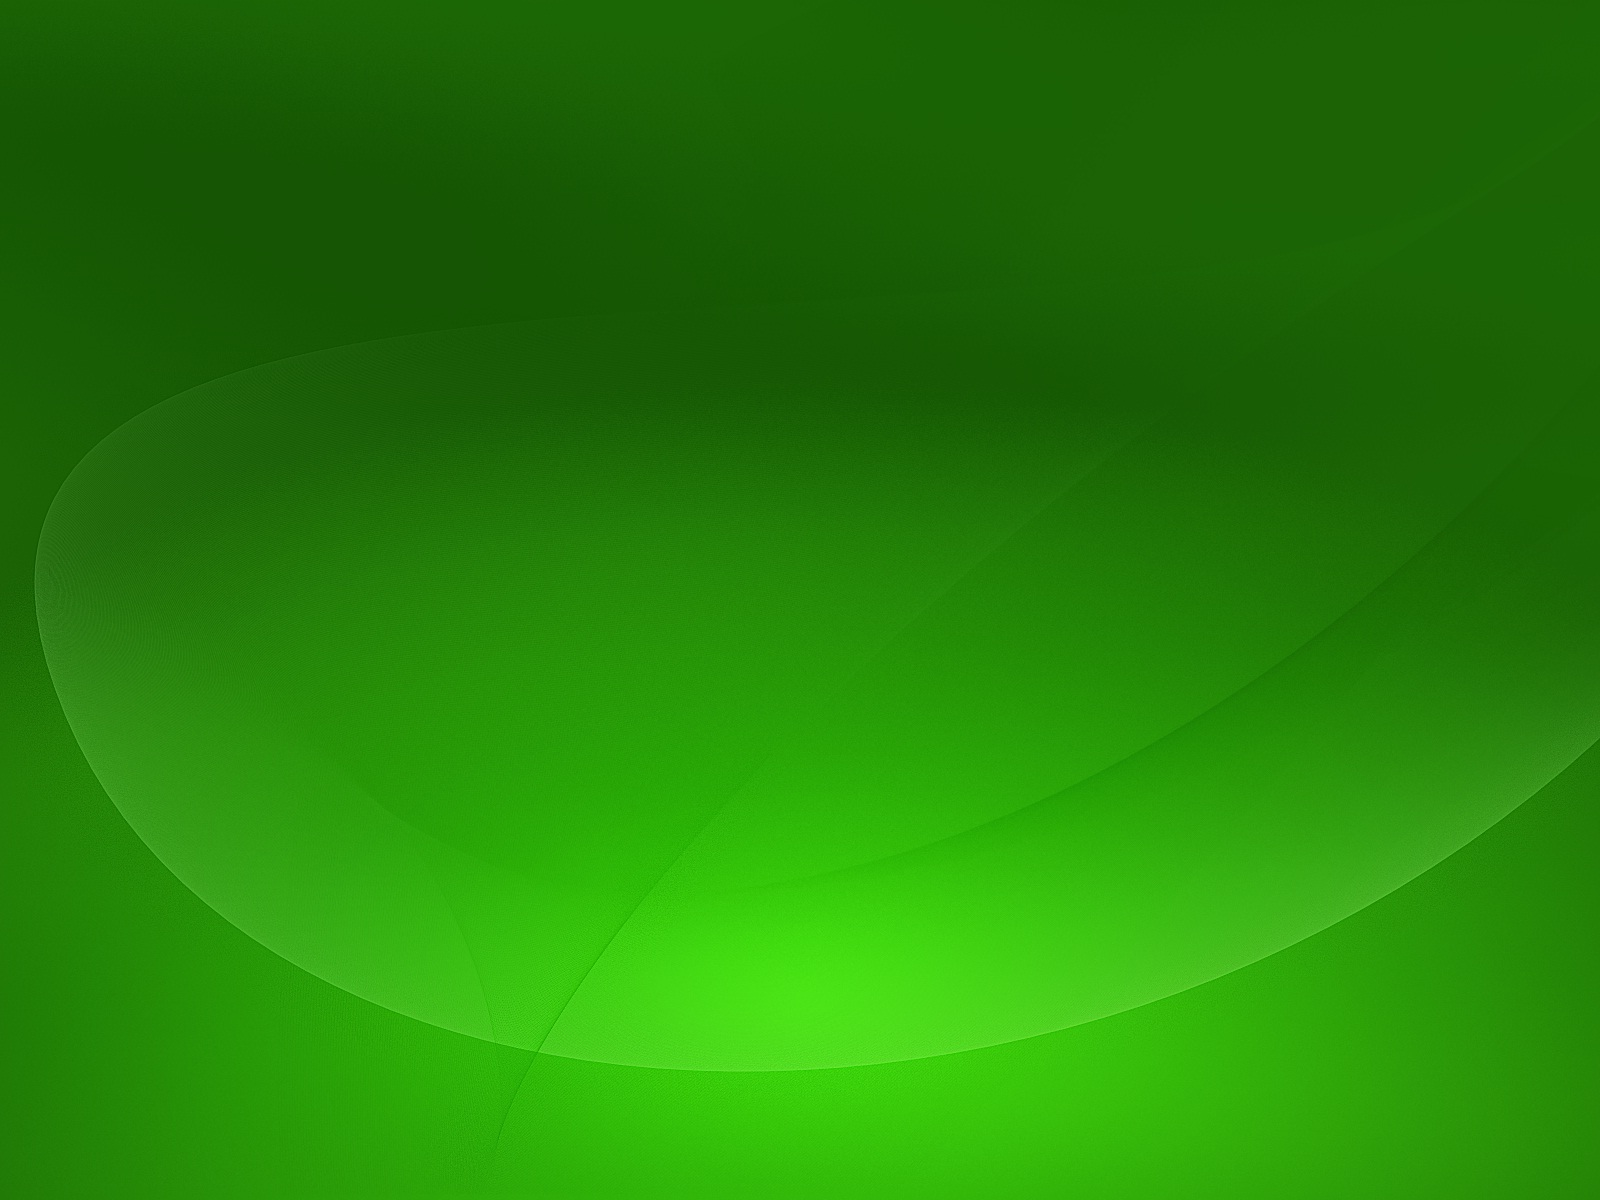 Green WOW 366.66 Kb